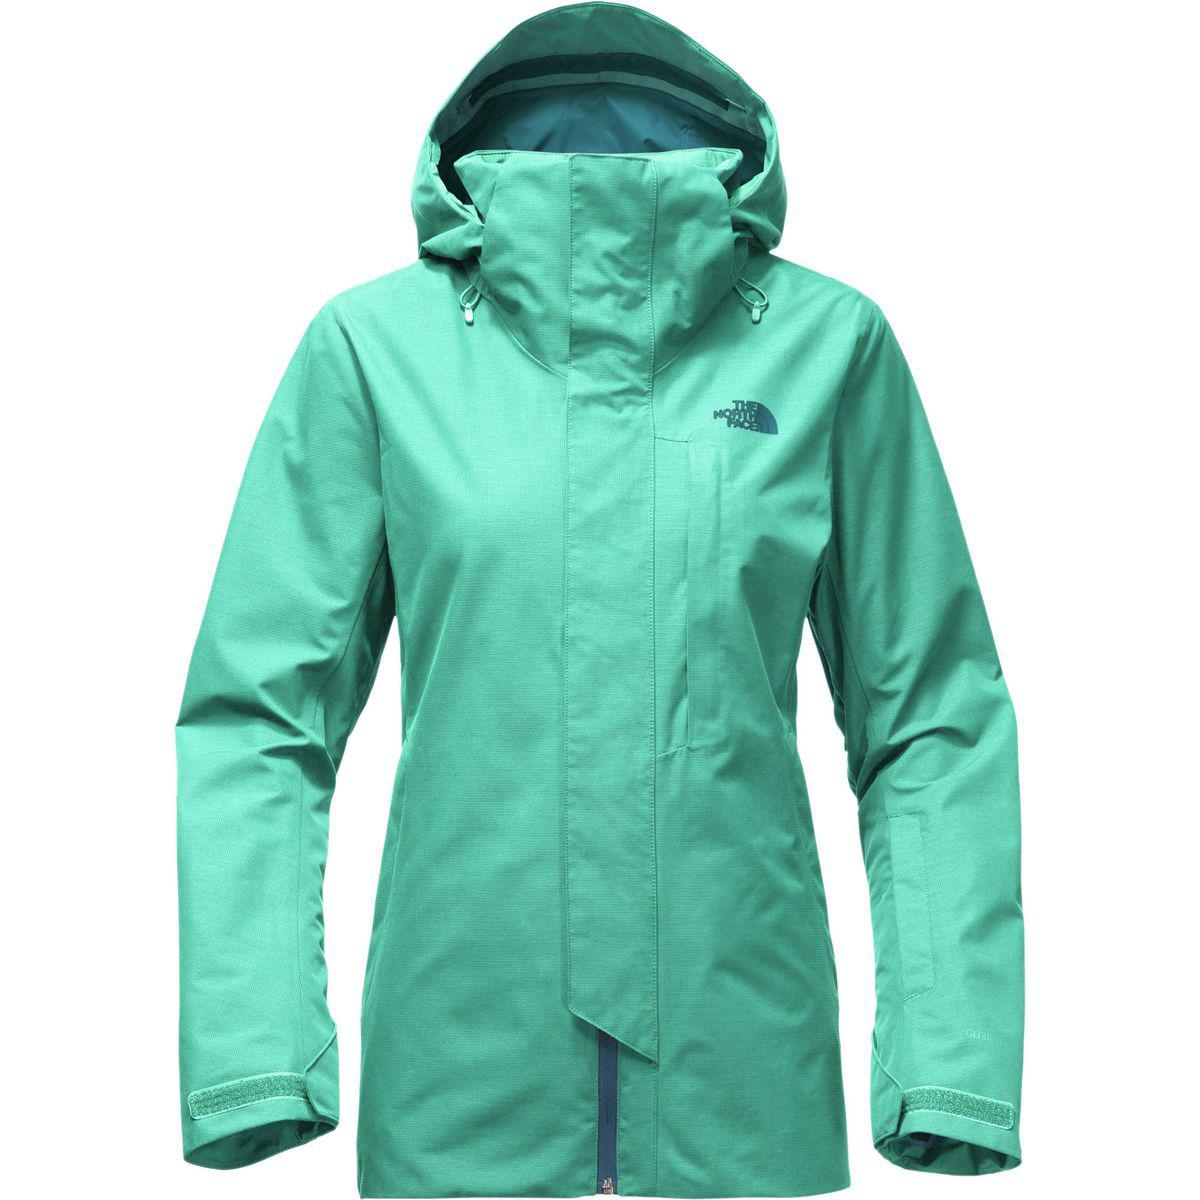 651e137a1621 Lyst - The North Face Alligare Triclimate Hooded 3-in-1 Jacket in Blue